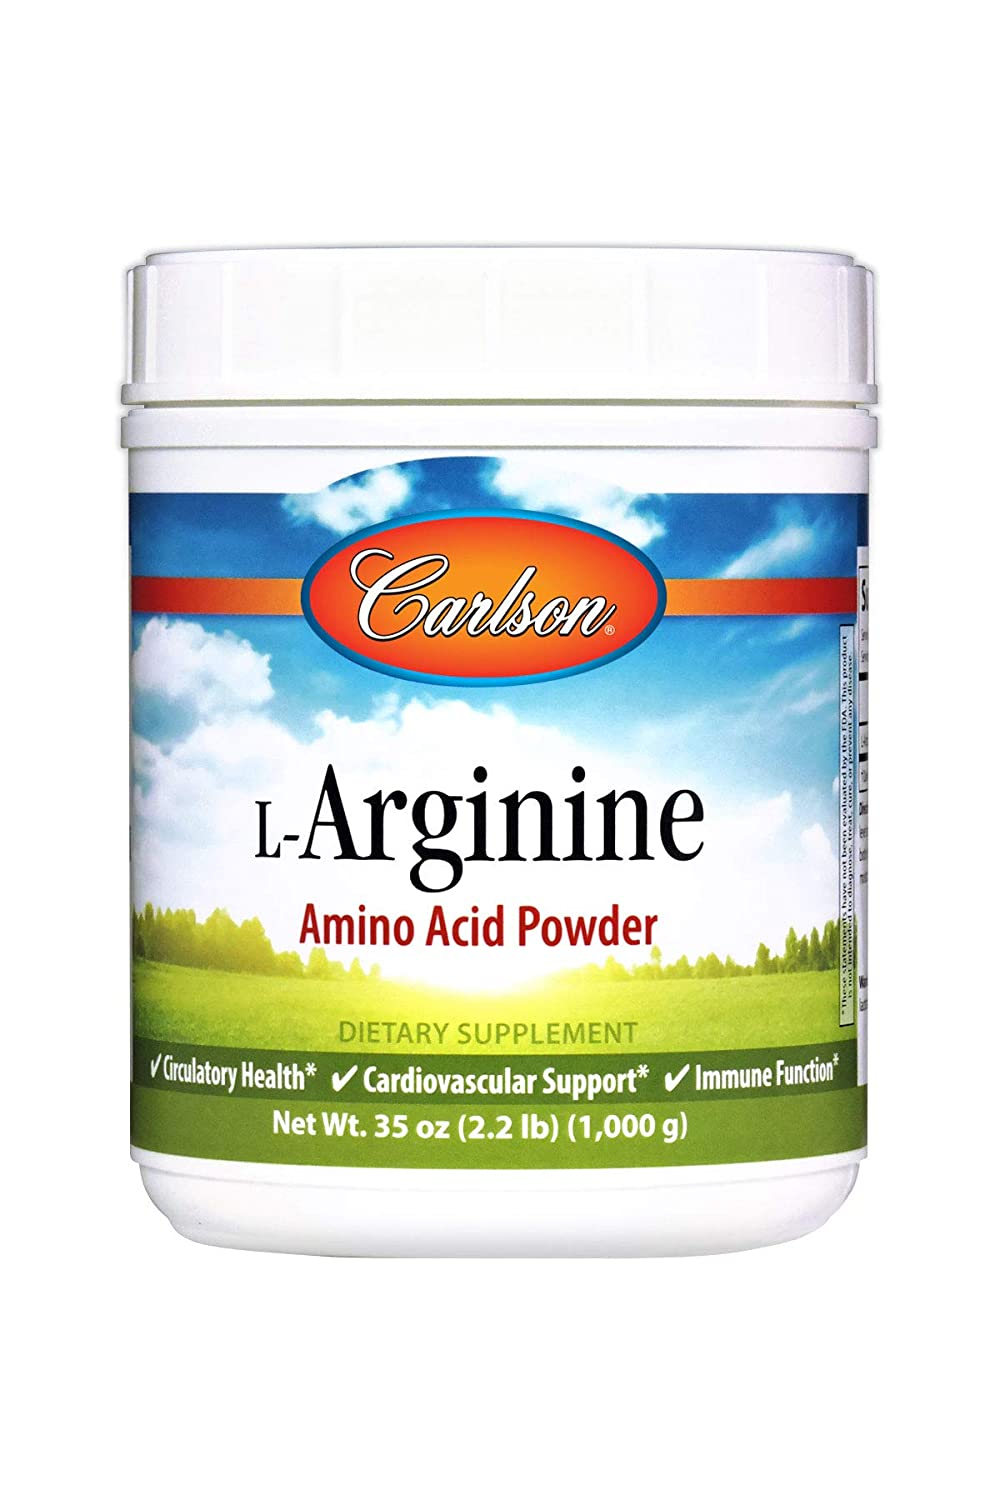 Carlson – L-Arginine, Amino Acid Powder, Circulatory Health, Cardiovascular Support Immune Function, 35 oz 1000 grams